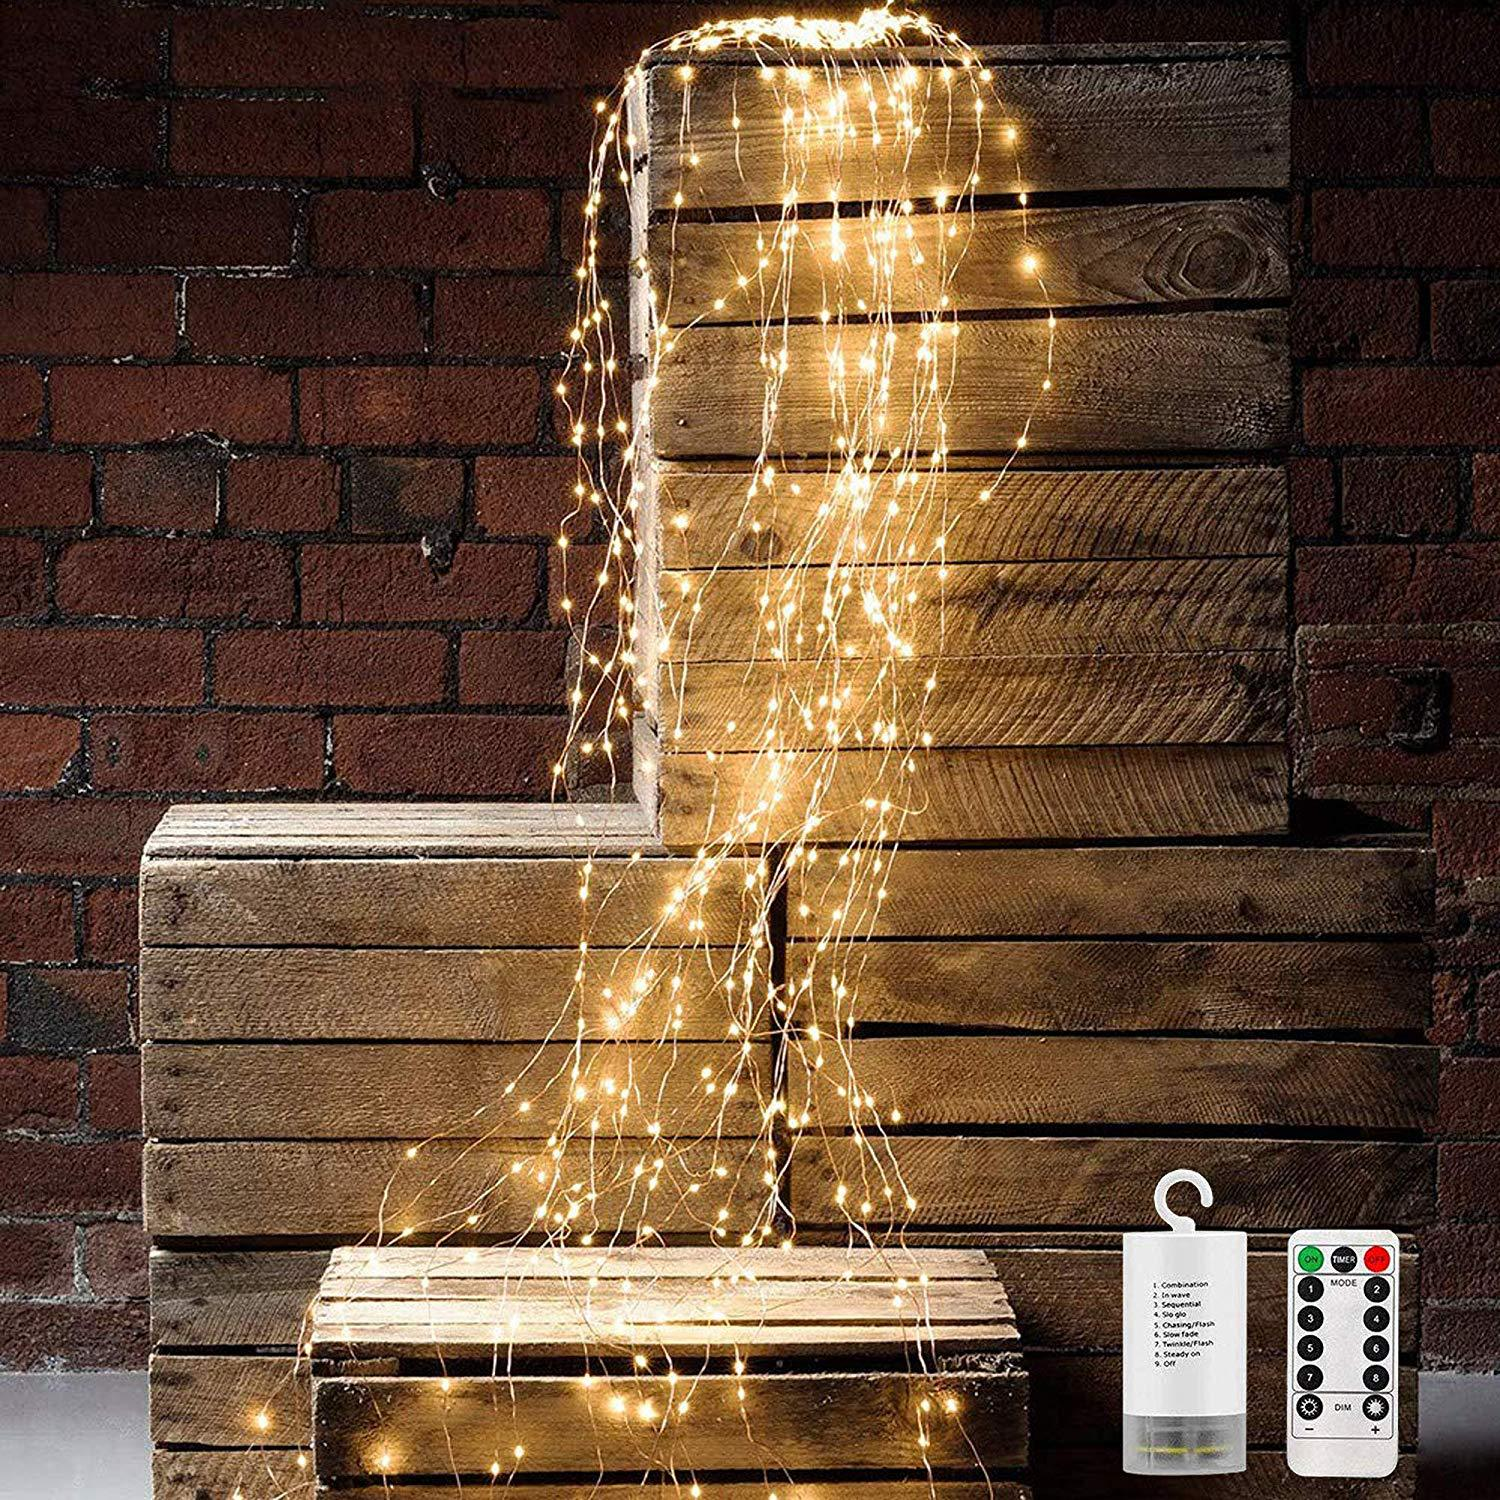 LED Solar Power Outdoor Light Strings Waterproof 200 300LED Copper Wire Christmas Horsetail Lamp Spray Lamp Holiday LIghts